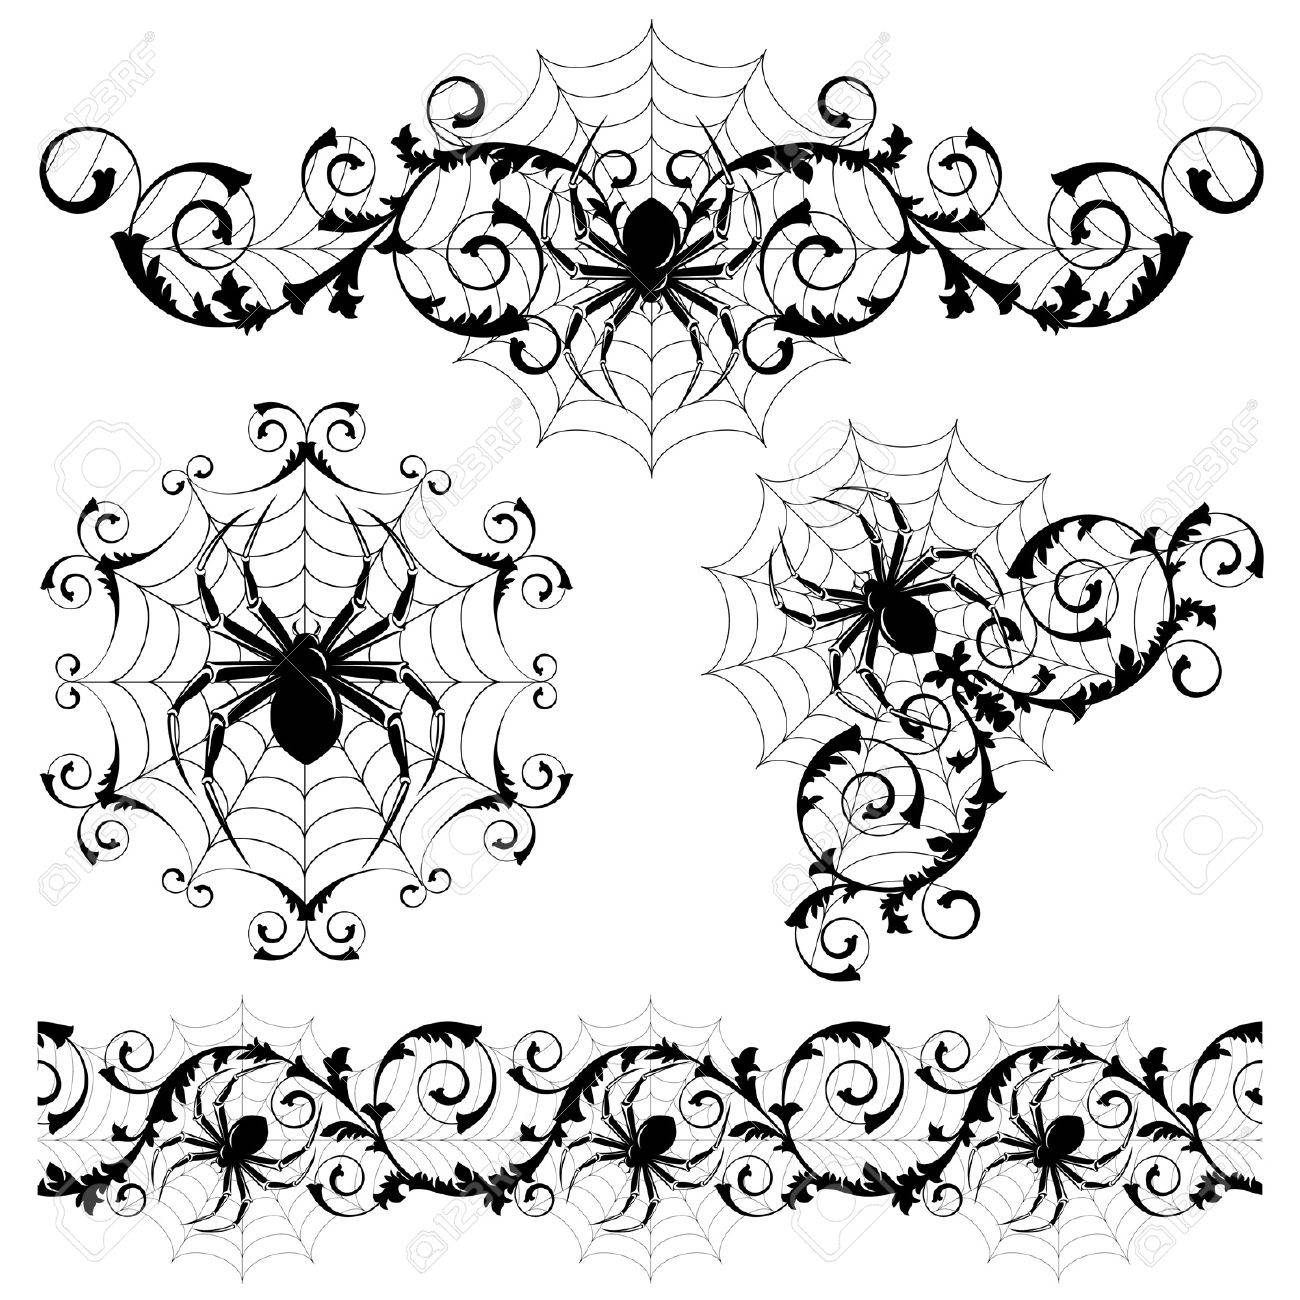 Web Spider Vector Set With a Spider's Webs And